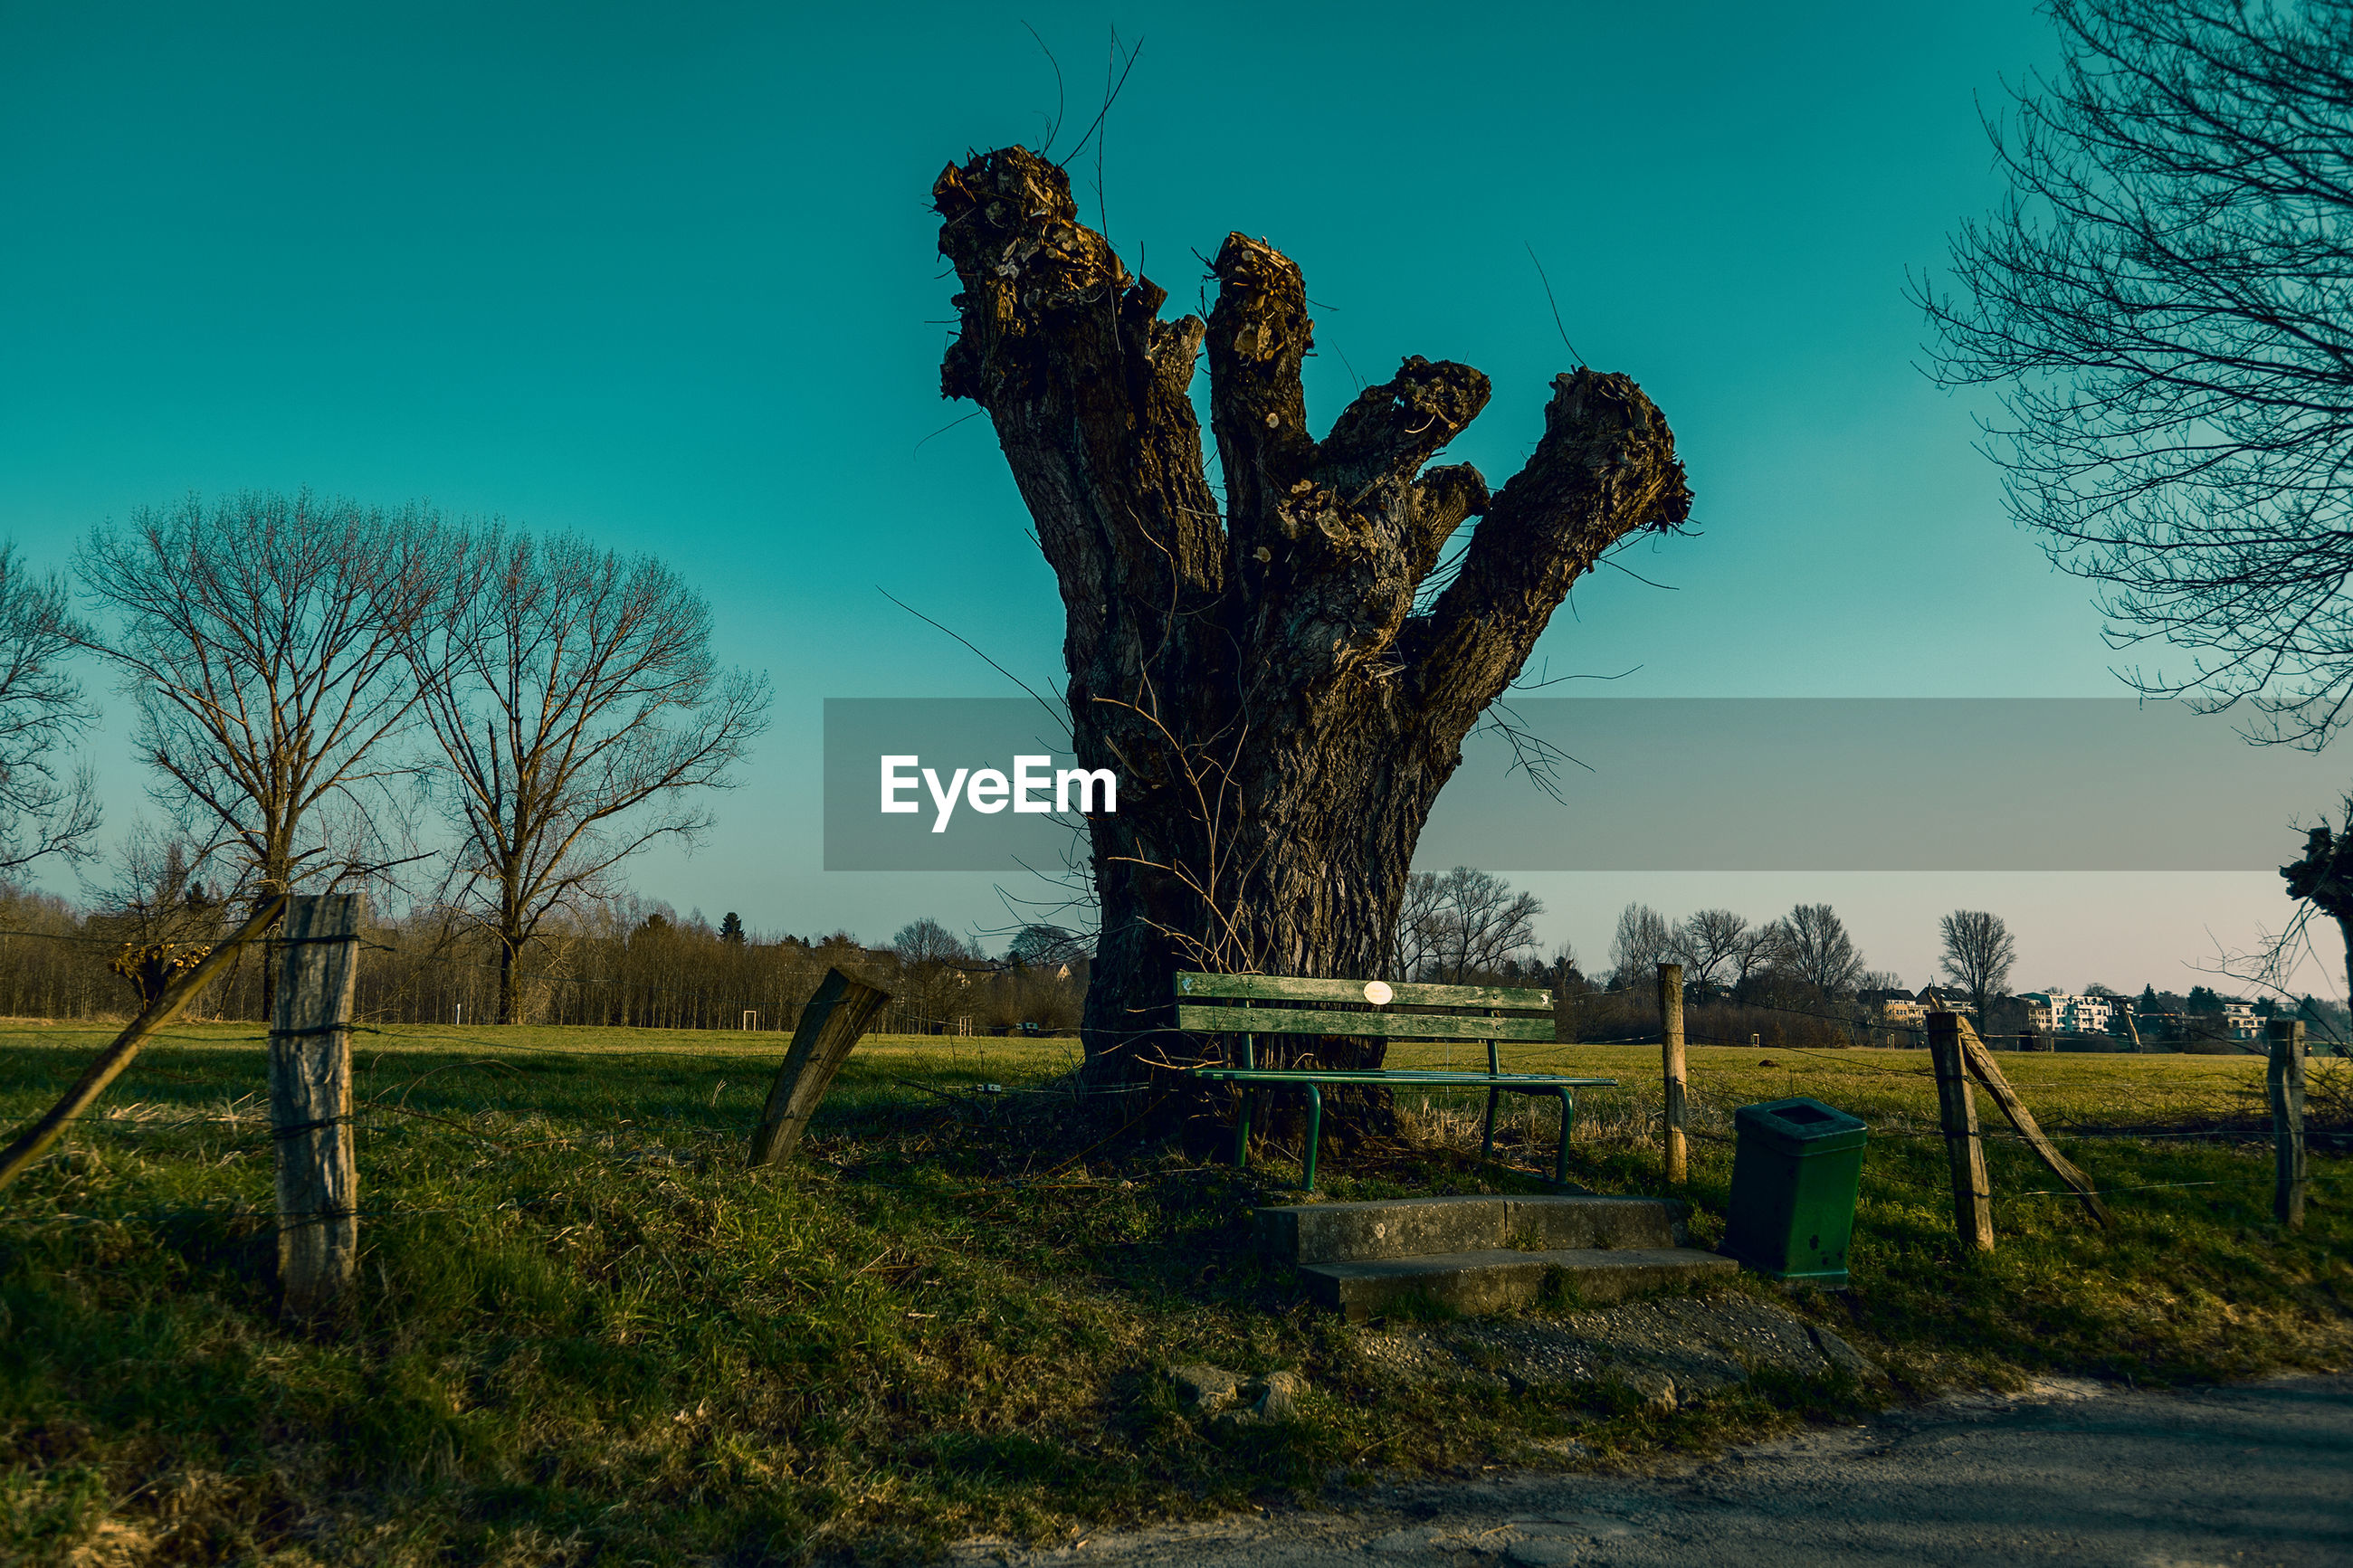 DIGITAL COMPOSITE IMAGE OF TREES ON FIELD AGAINST CLEAR SKY